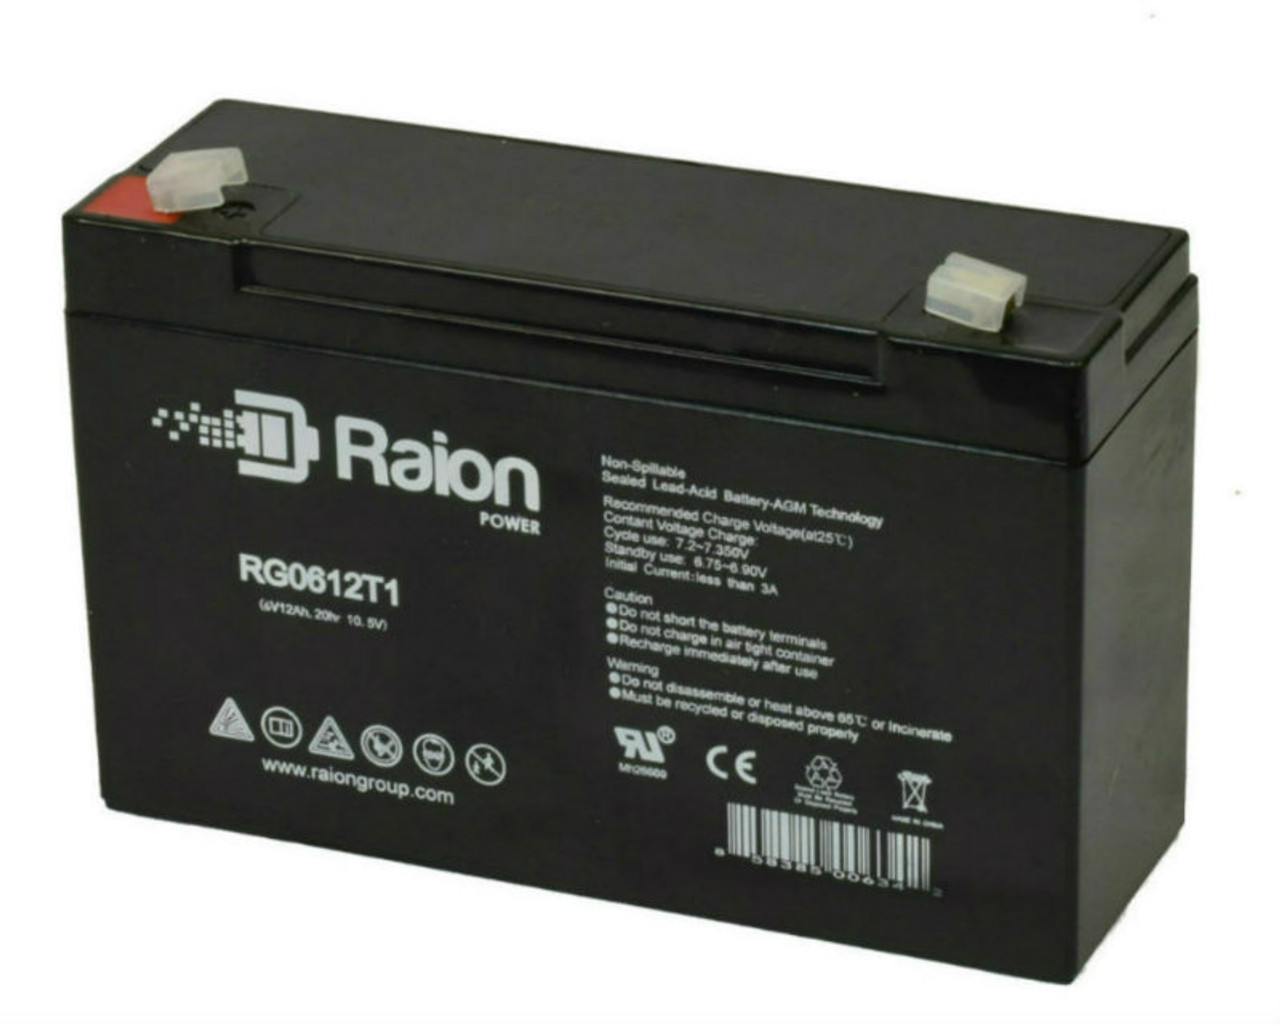 Raion Power RG06120T1 Replacement Battery Pack for Dynaray DR739 emergency light